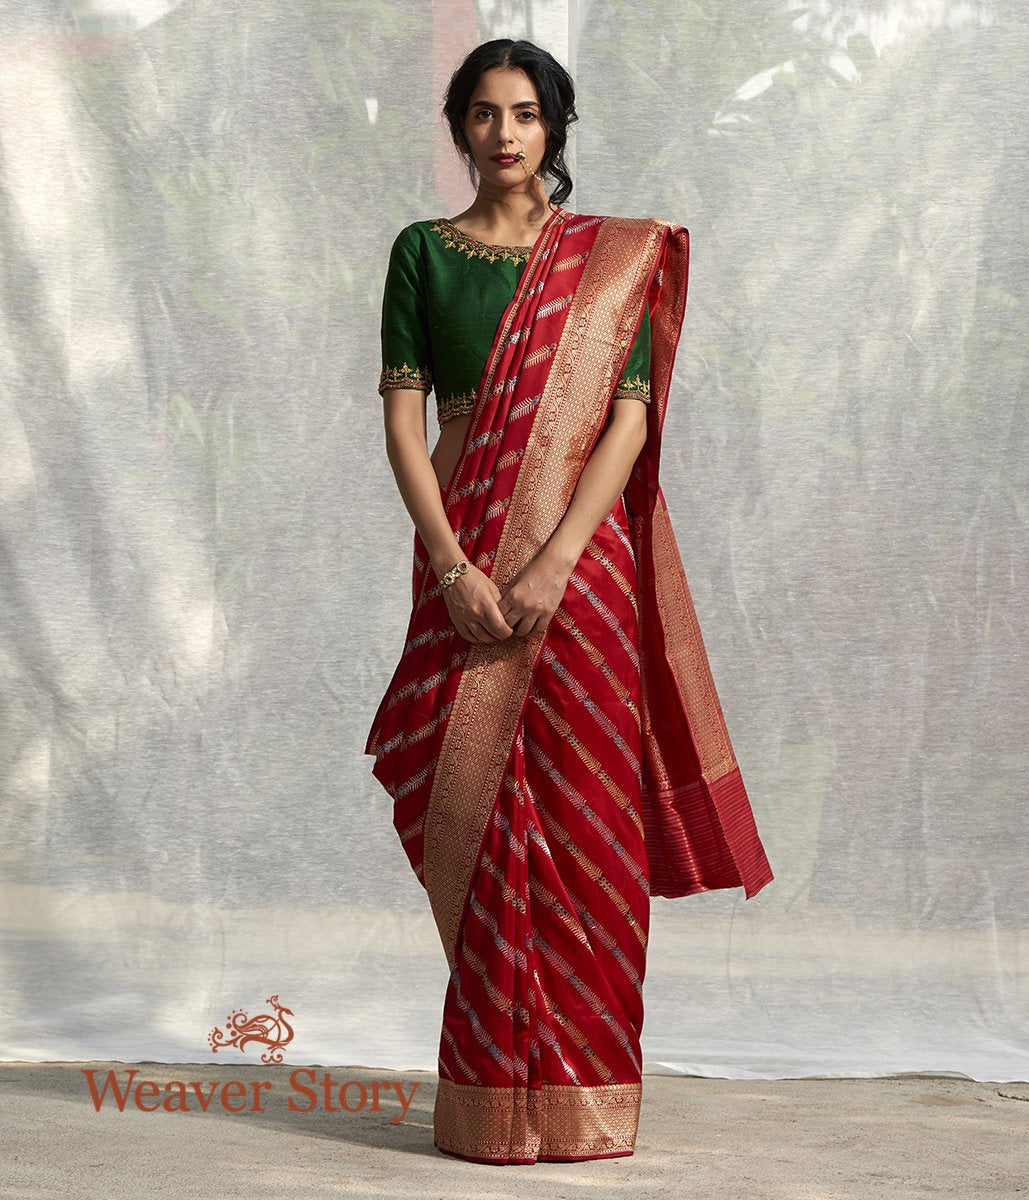 Handwoven Red Silk Saree with Diagonally Woven Meenakari Bel